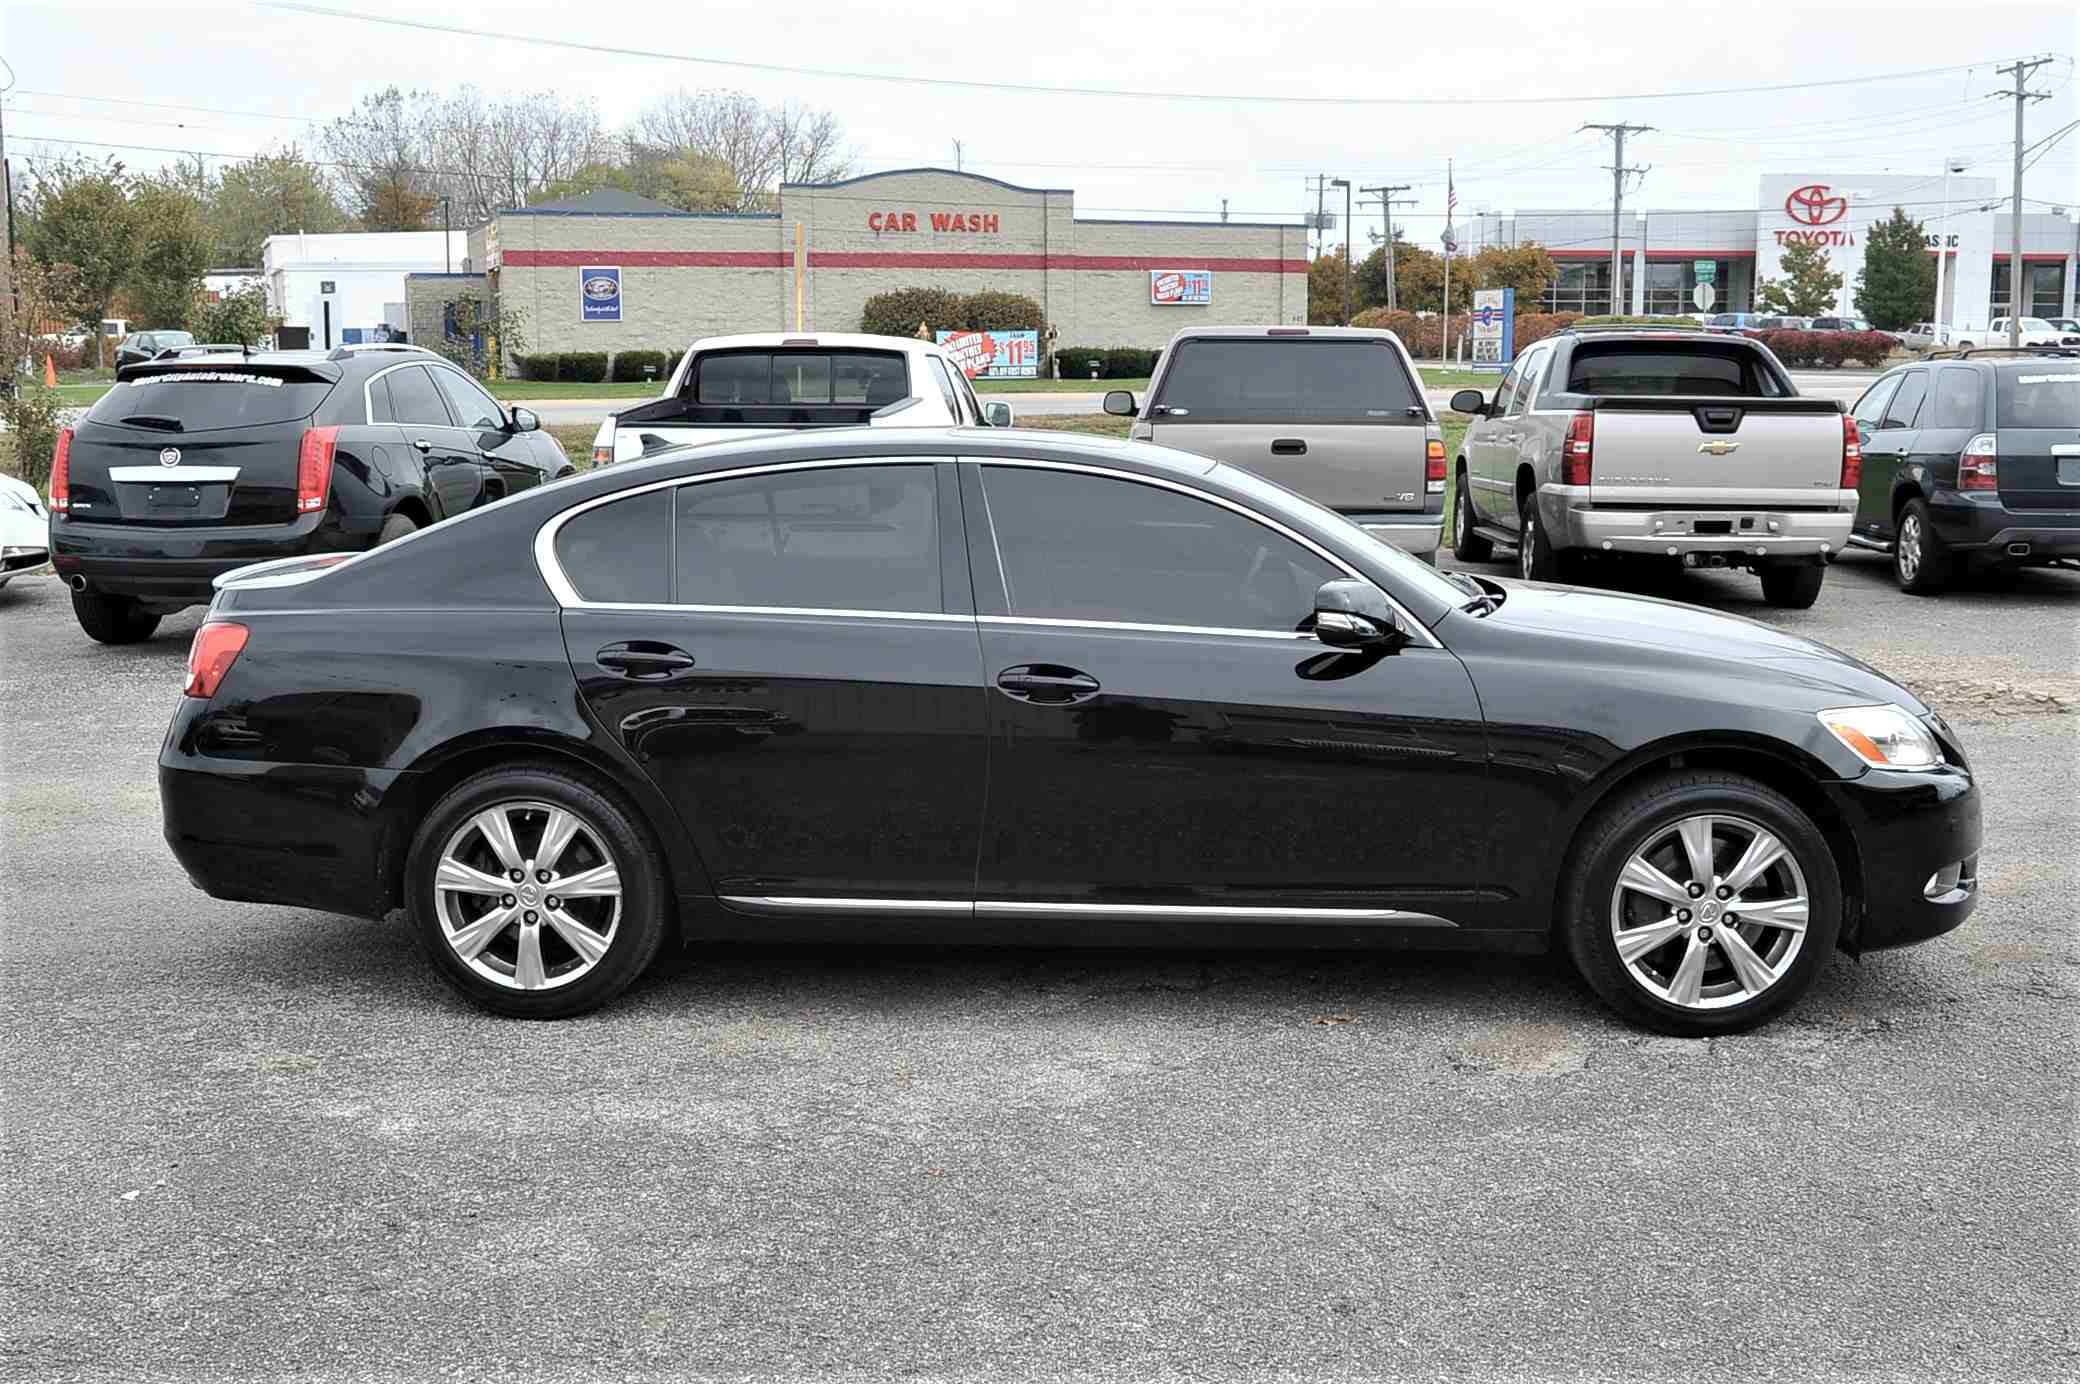 2008 Lexus GS350 Navigation Black AWD Sedan Sale Buffalo Grove Deerfield Fox Lake Antioch